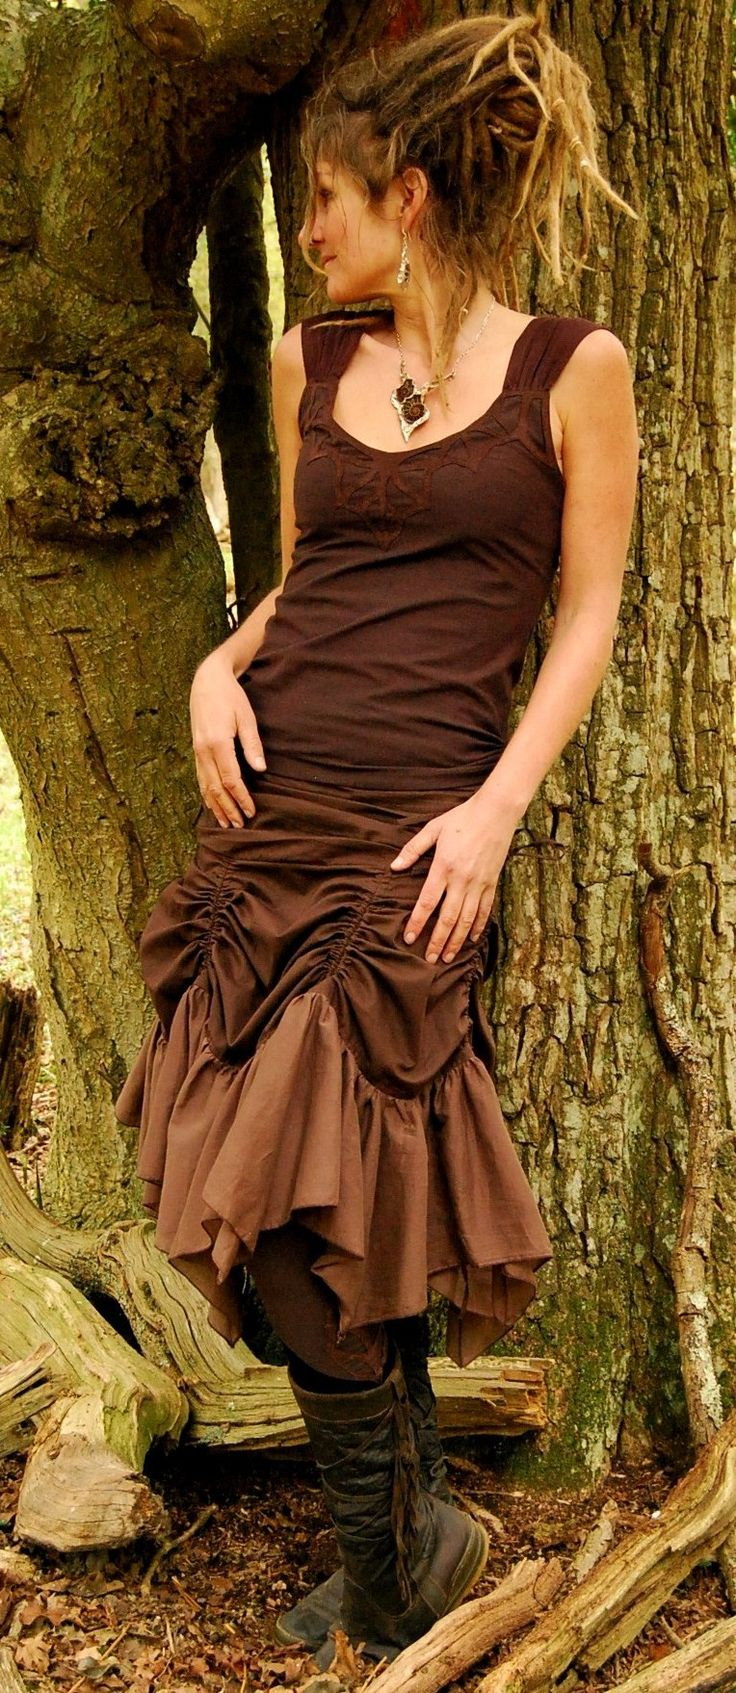 Skirt, Funky Steam Punk Clothing, Faerie Clothing, Goddess Clothing